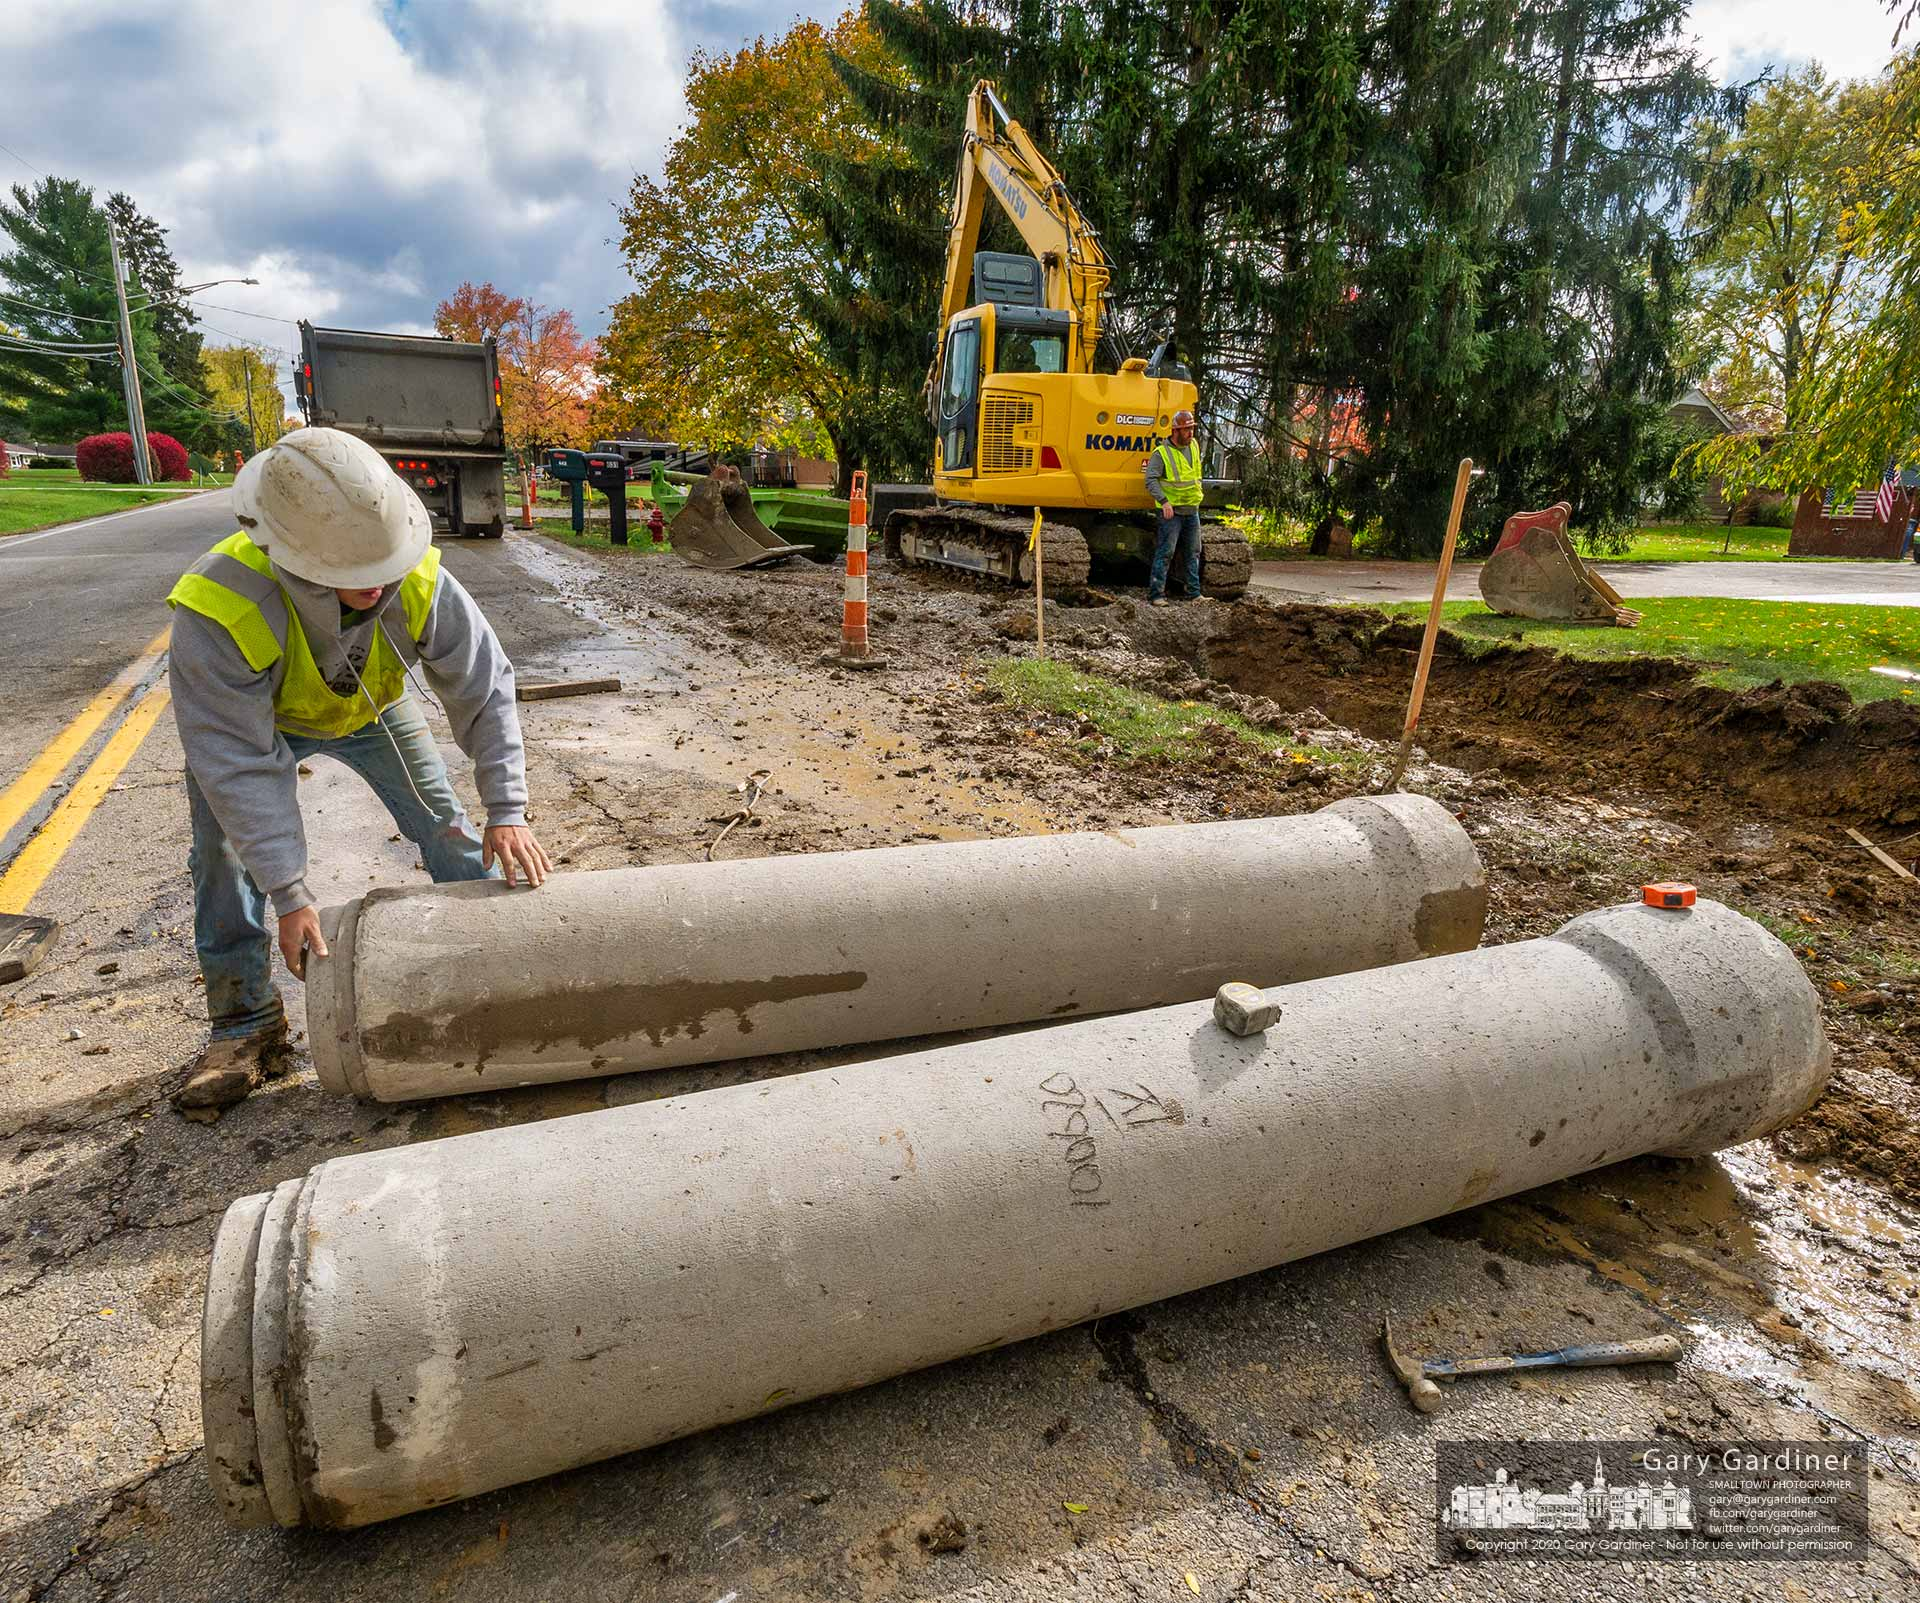 A construction worker prepares a section of storm drain for placement beneath what will be the new sidewalks on East College Ave. My Final Photo for Oct. 30, 2020.